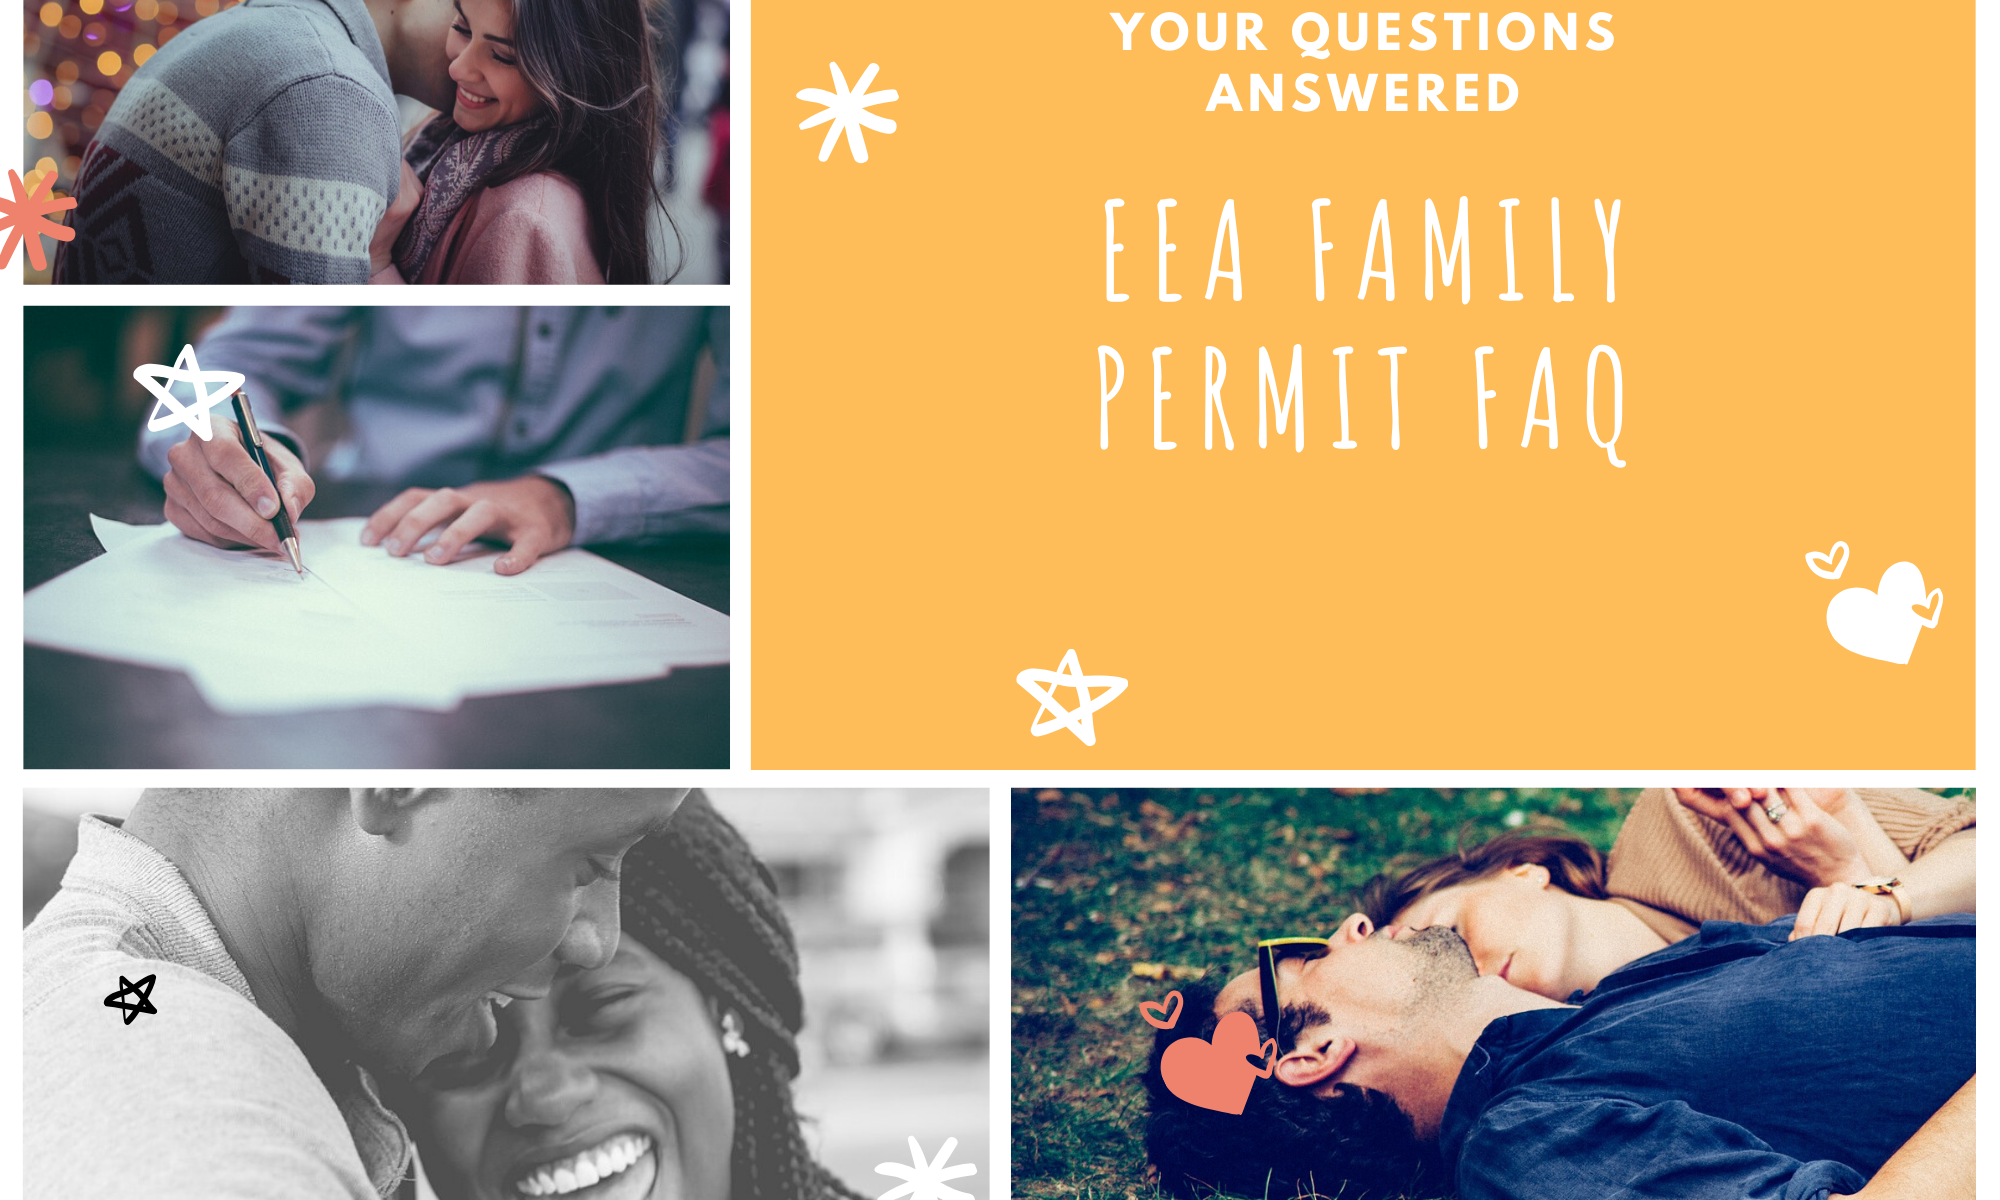 EEA Family Permit FAQ